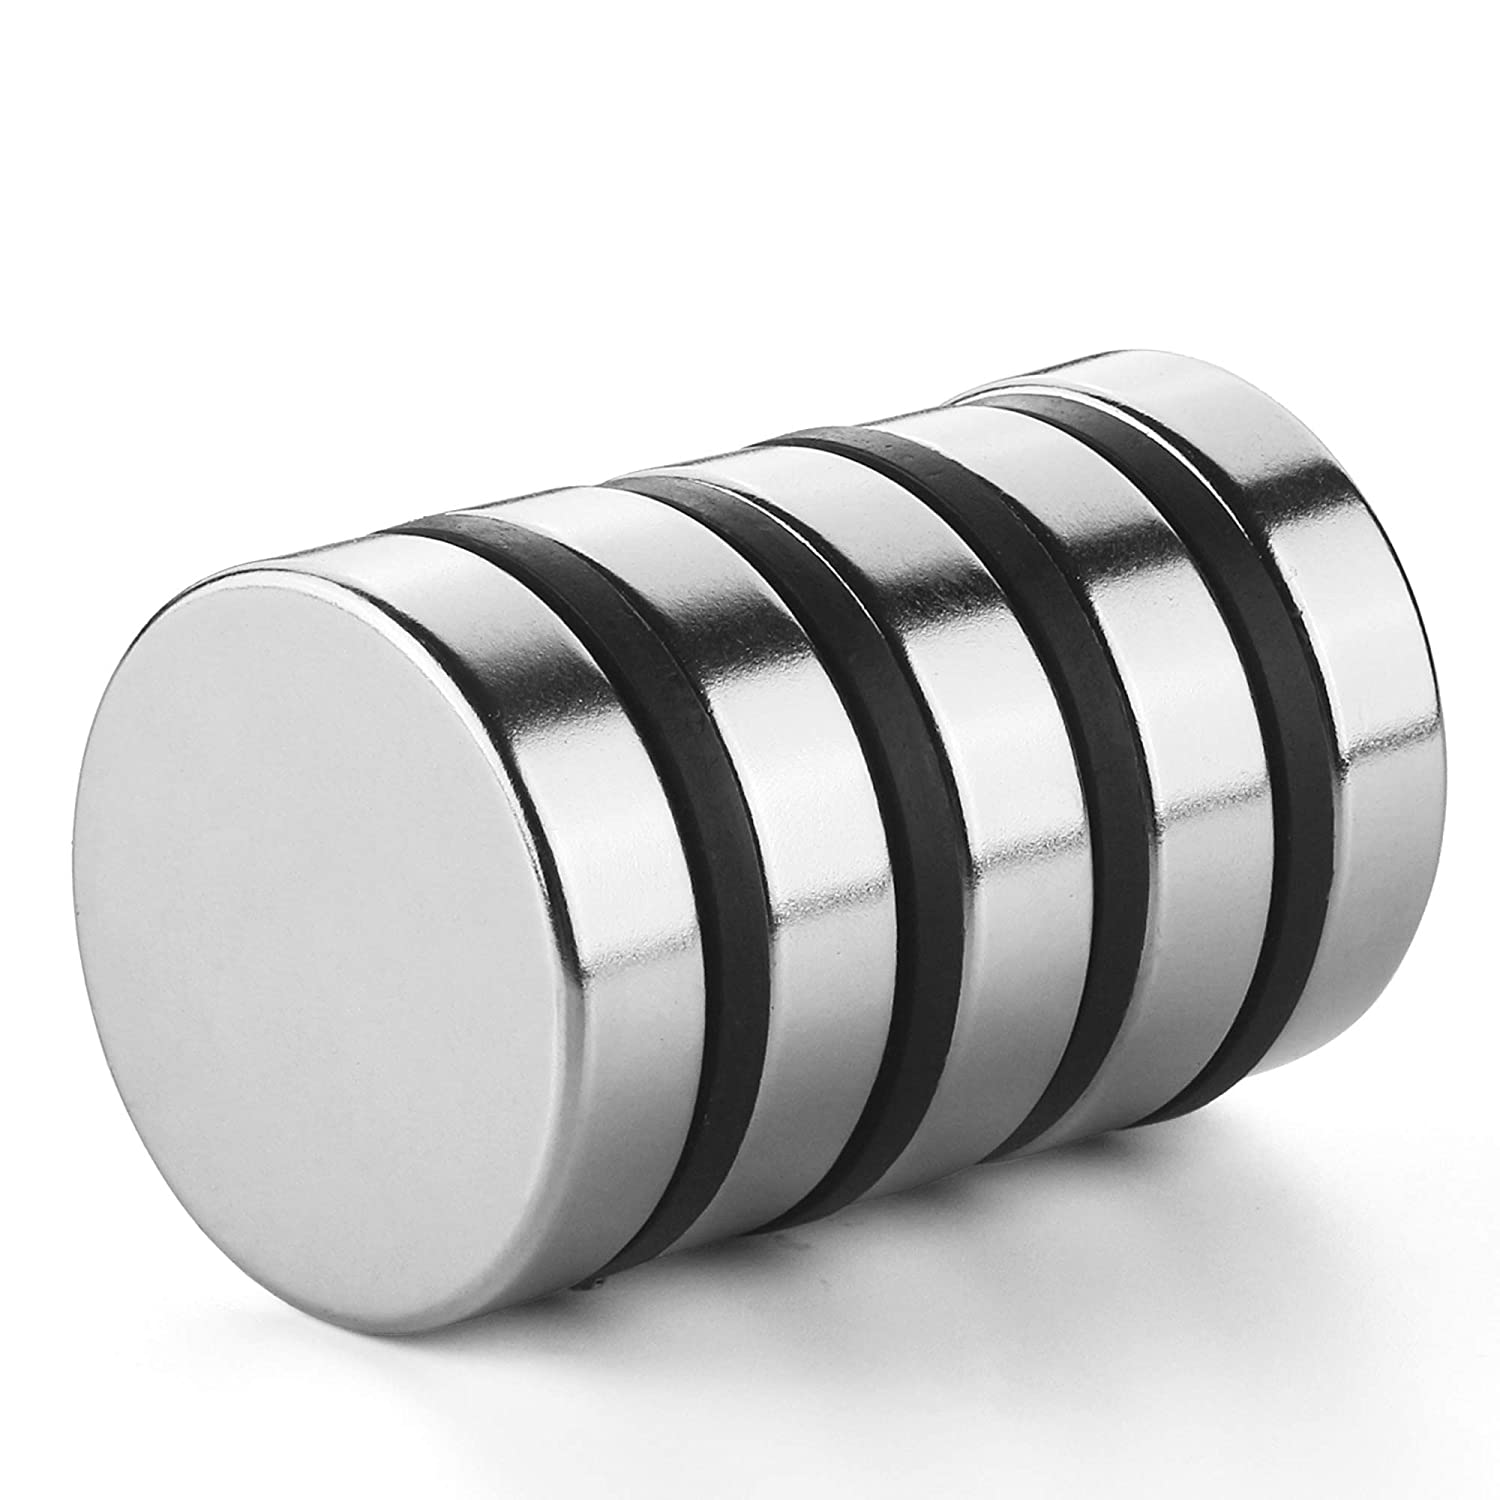 REALTH Magnets Disc Popular popular Very popular! 1.57 Inch Rare Ea Permanent Neodymium Strong